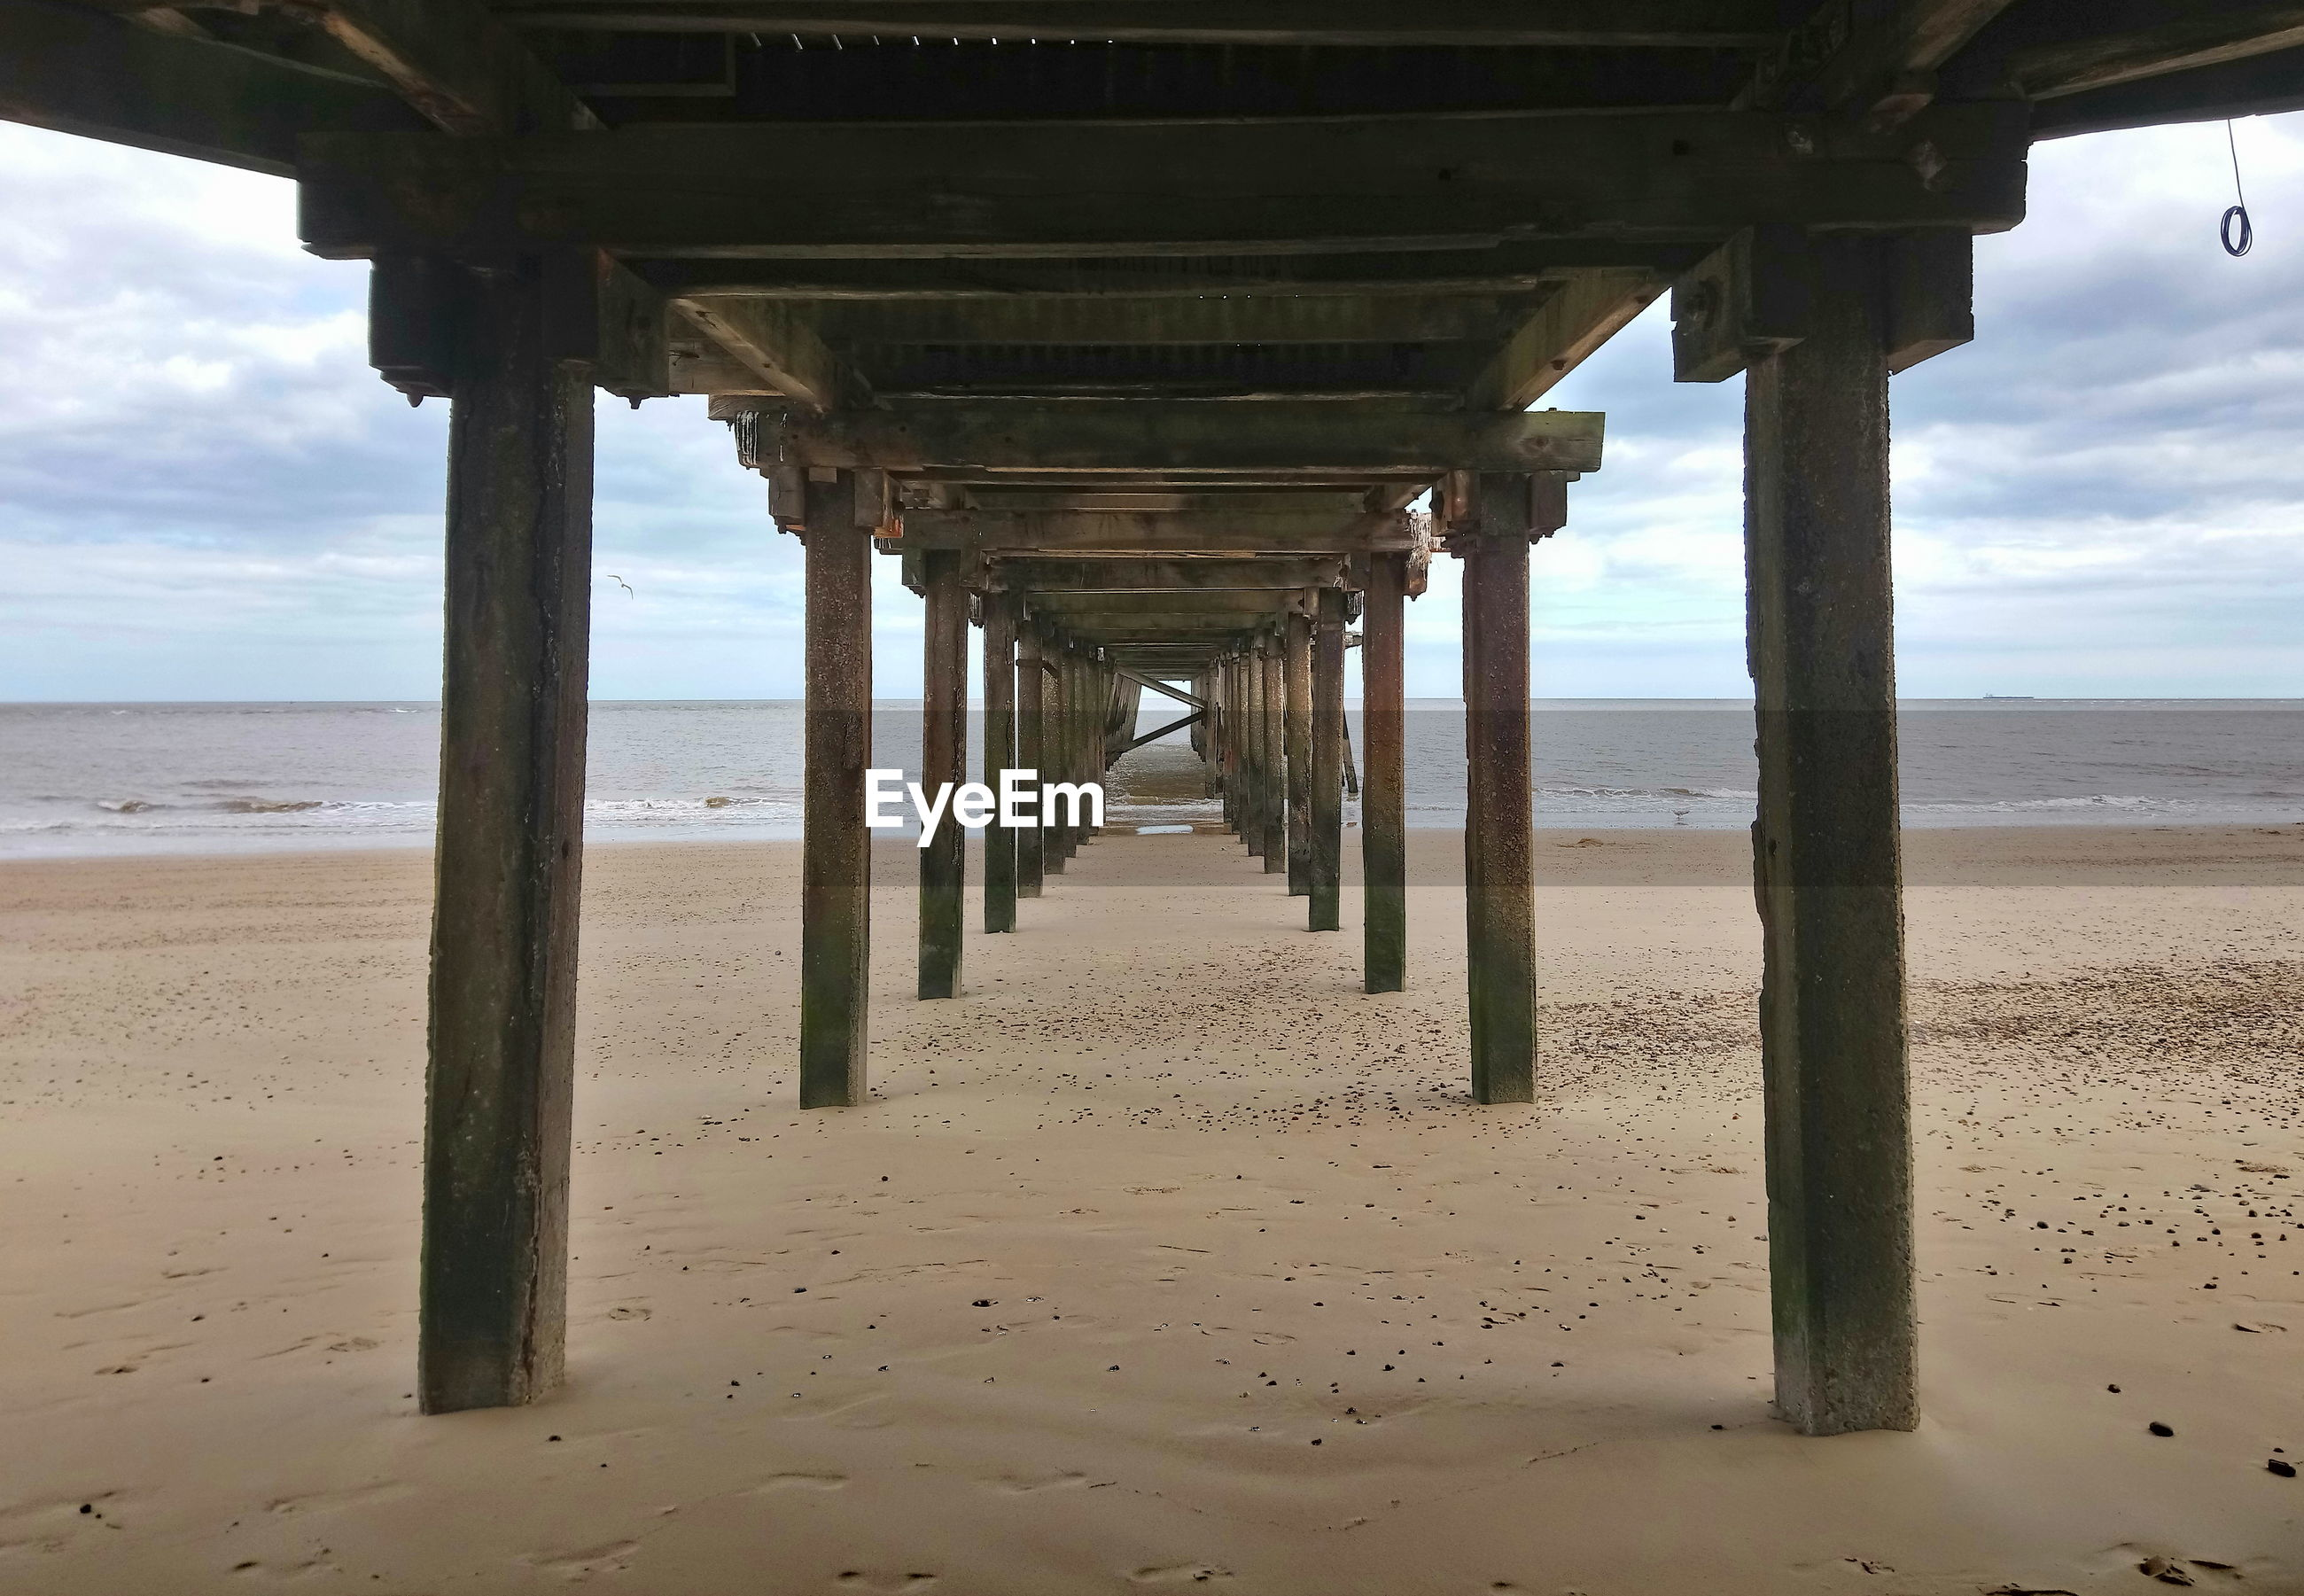 View of pier on beach against sky